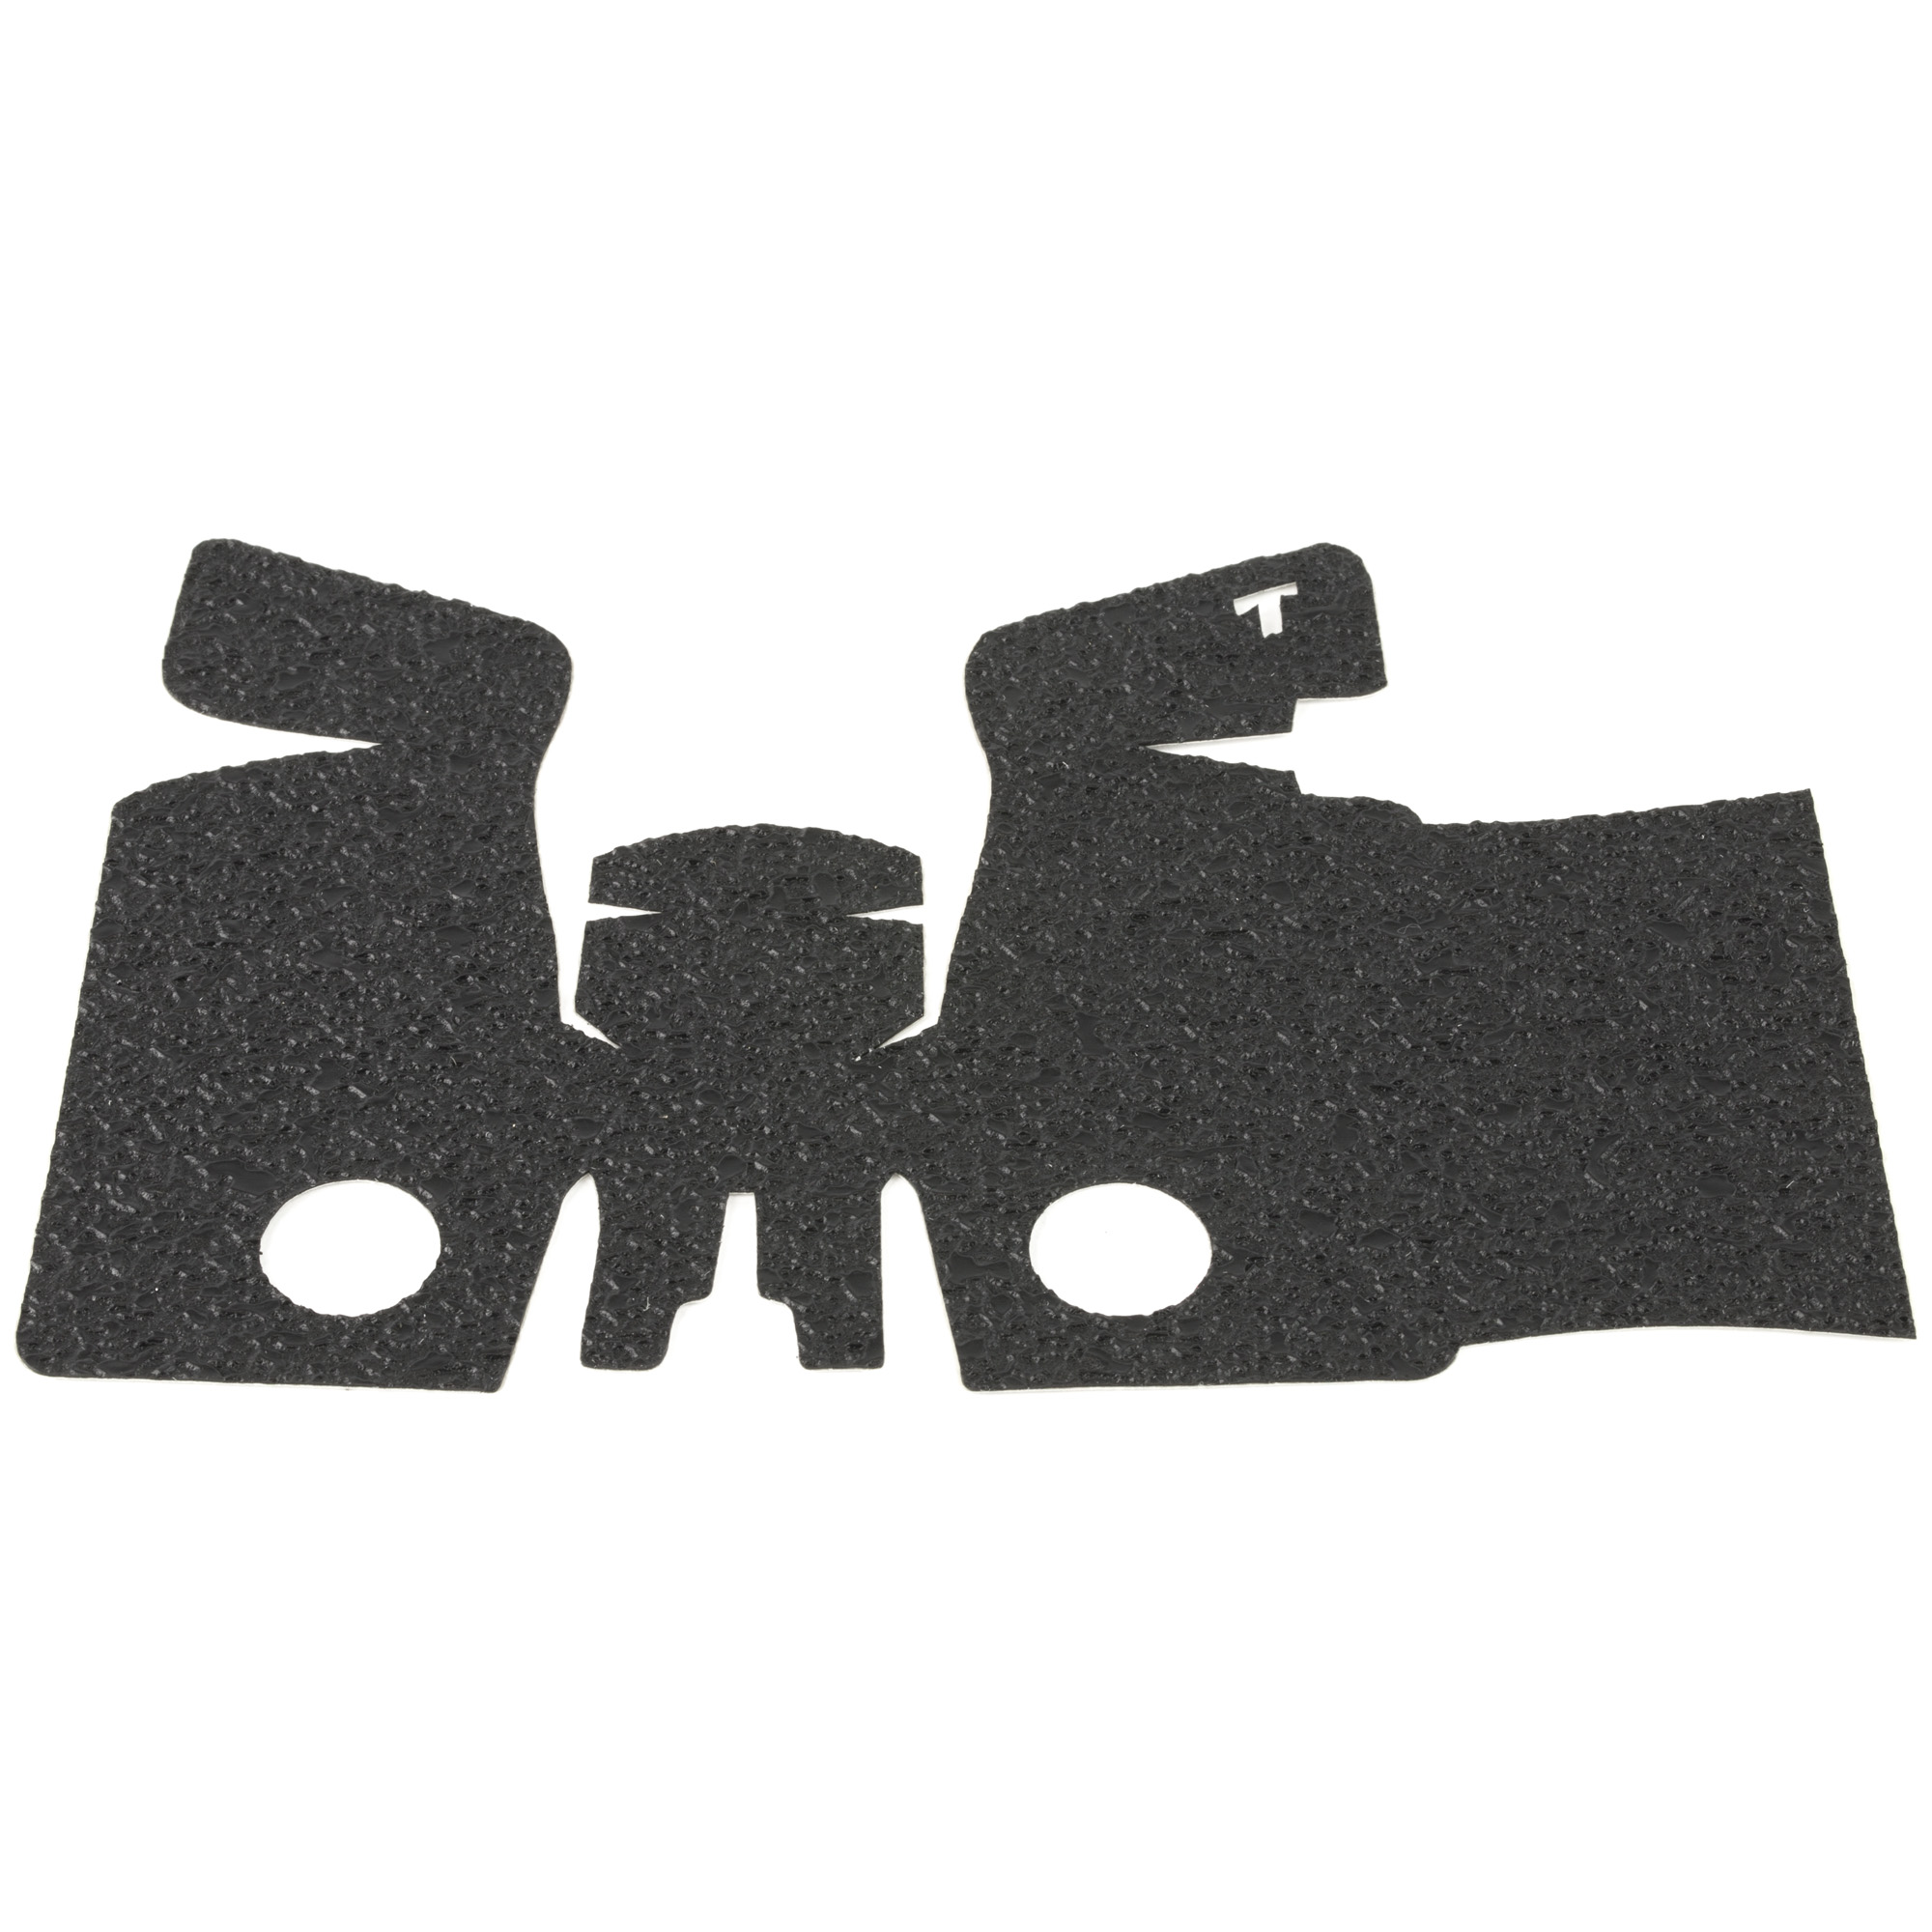 """TALON Grips for Smith & Wesson SD9 and SD40 models. This rear wrap grip is in the rubber texture and offers full side panel coverage including the thumb rest area"""" full coverage under the trigger guard"""" and high coverage on the backstrap. This grip has graphic cutouts for the S&W emblem on each side of the firearm."""